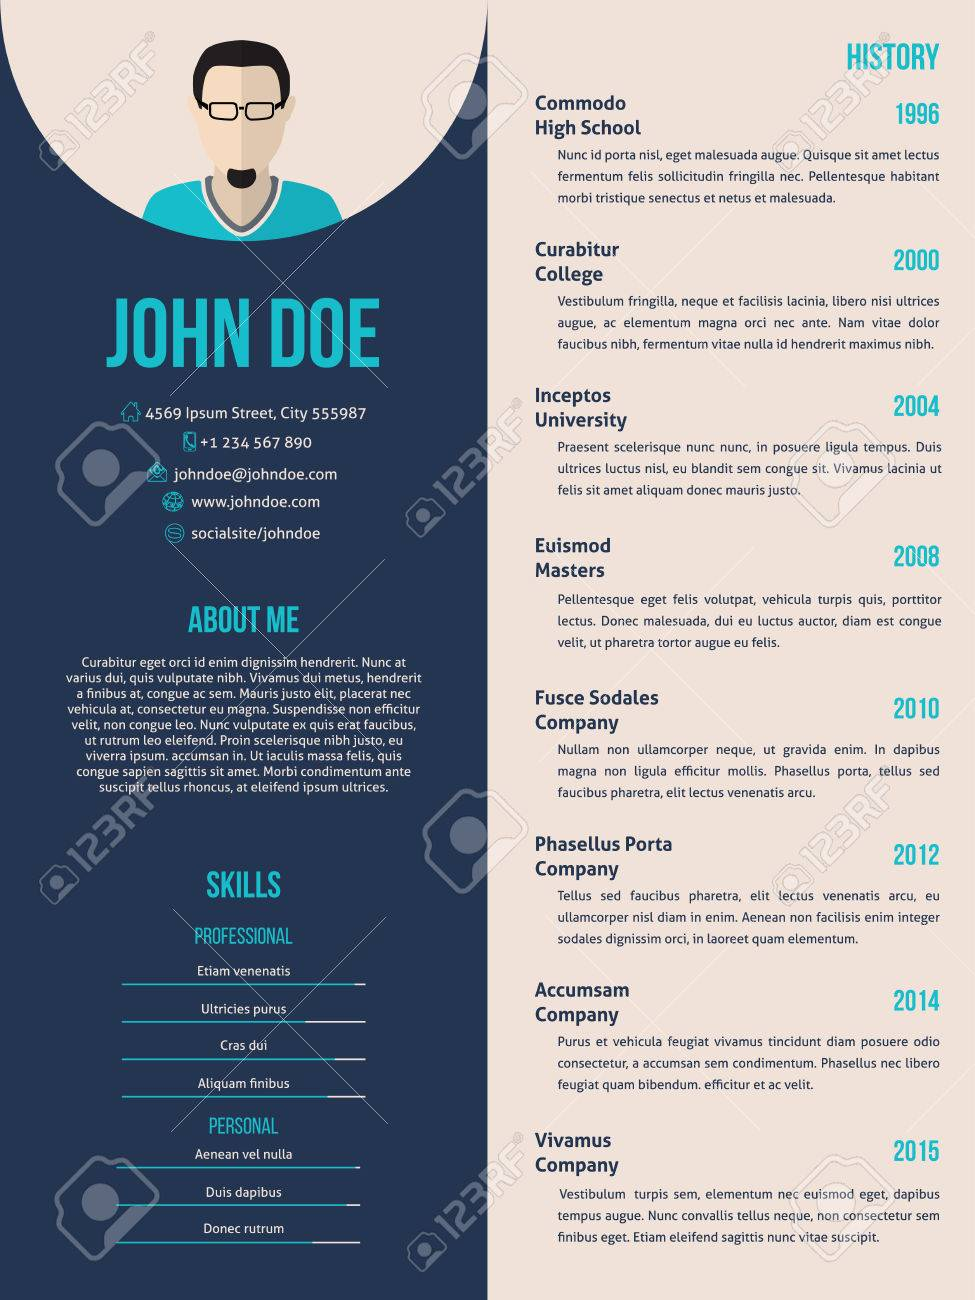 New Curriculum Vitae Cv Resume Template Design Royalty Free Cliparts